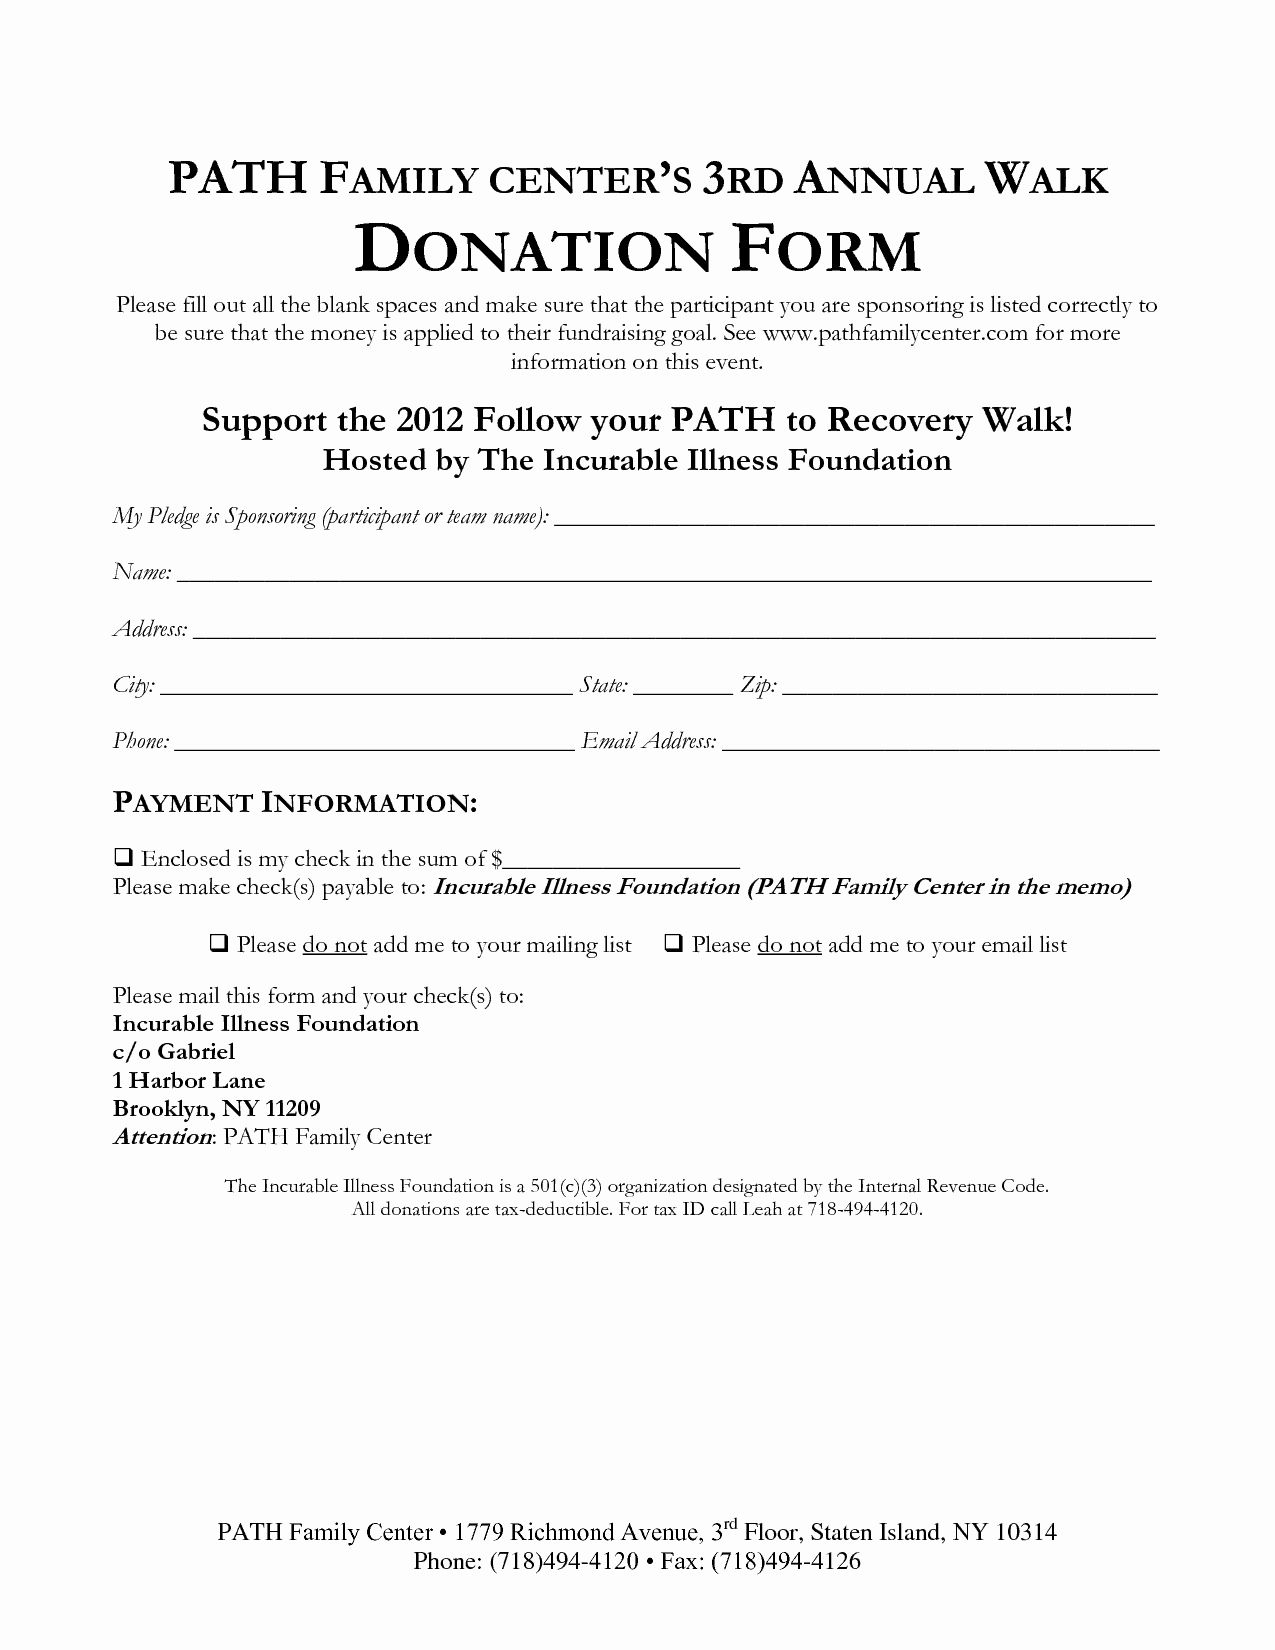 Donation Form Template Free Elegant 36 Free Donation Form Templates In Word Excel Pdf Donation Form Donation Request Letters Receipt Template